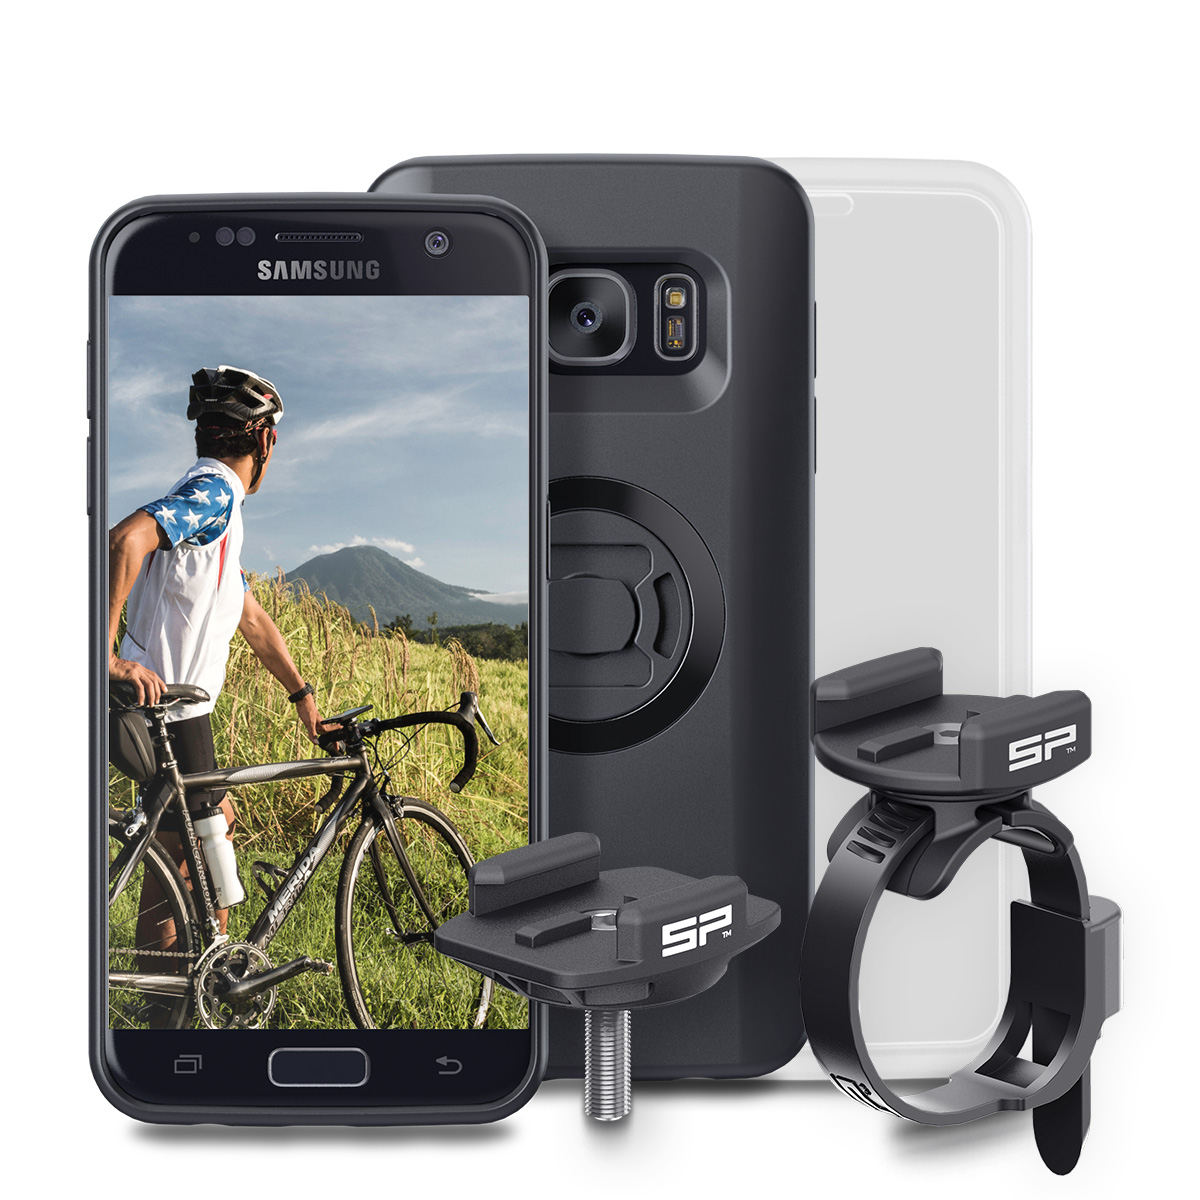 SP Connect Bike Bundle Samsung S7 - Držáky sada SP Bike Bundle Iphone a Samsung samsung galaxy s7